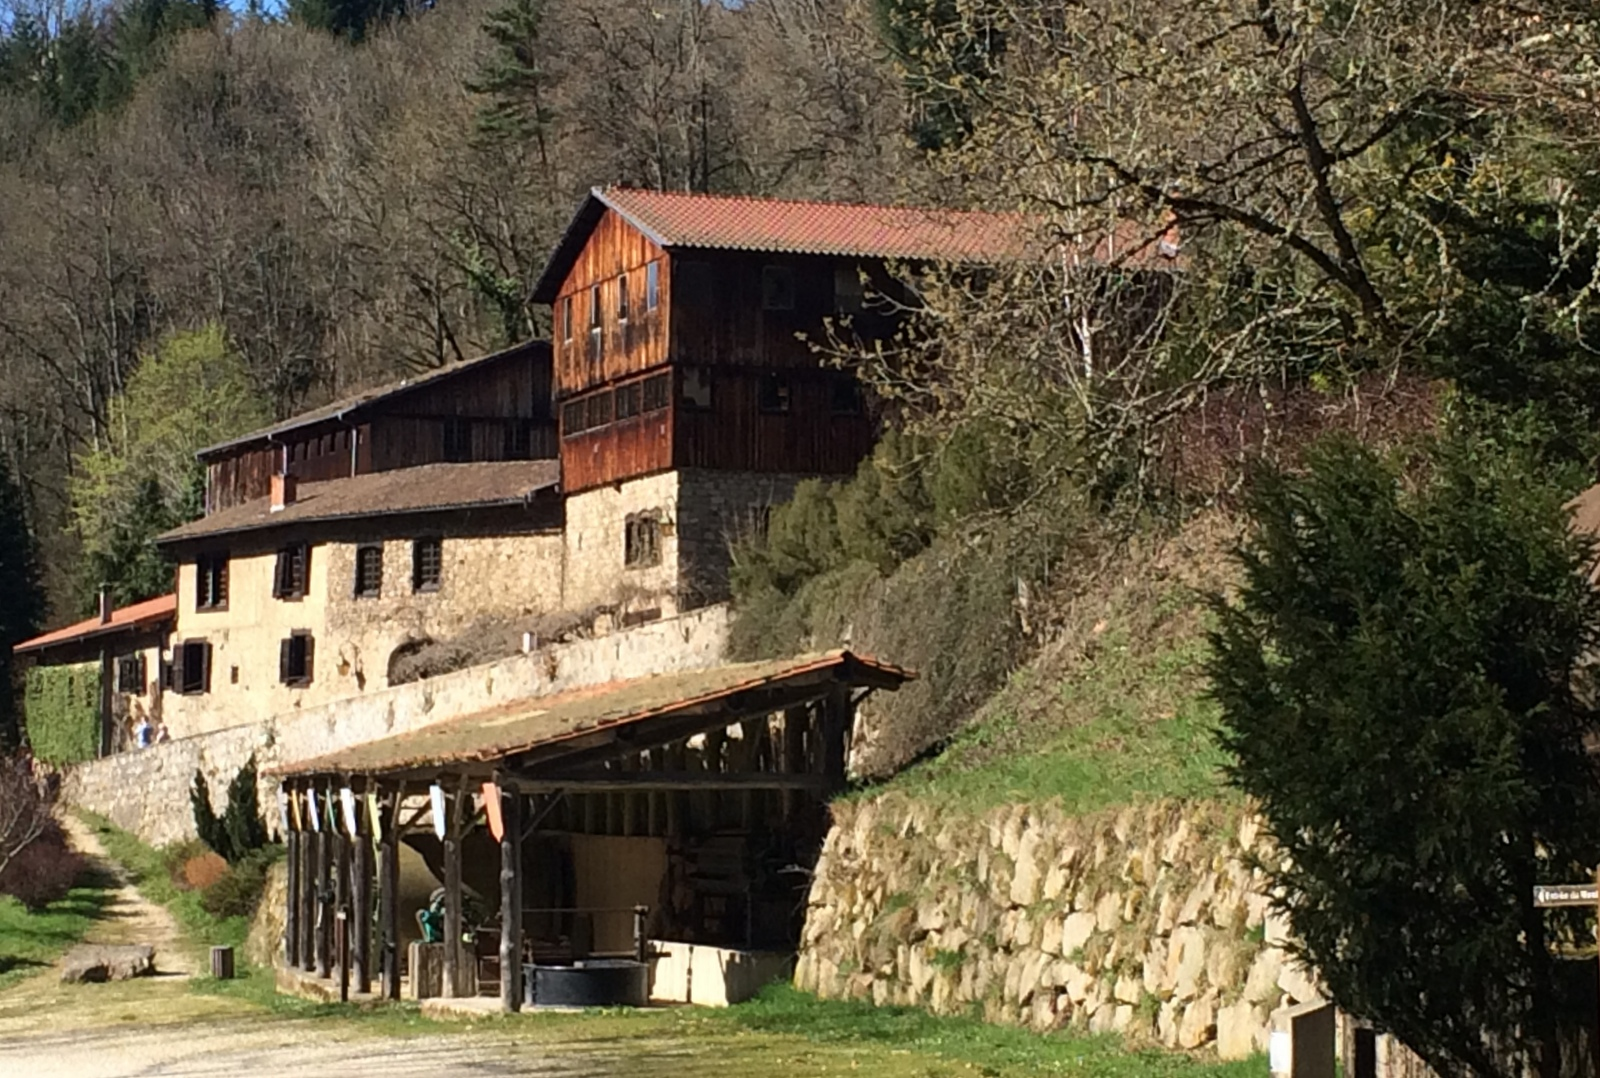 Le Moulin Richard de Bas